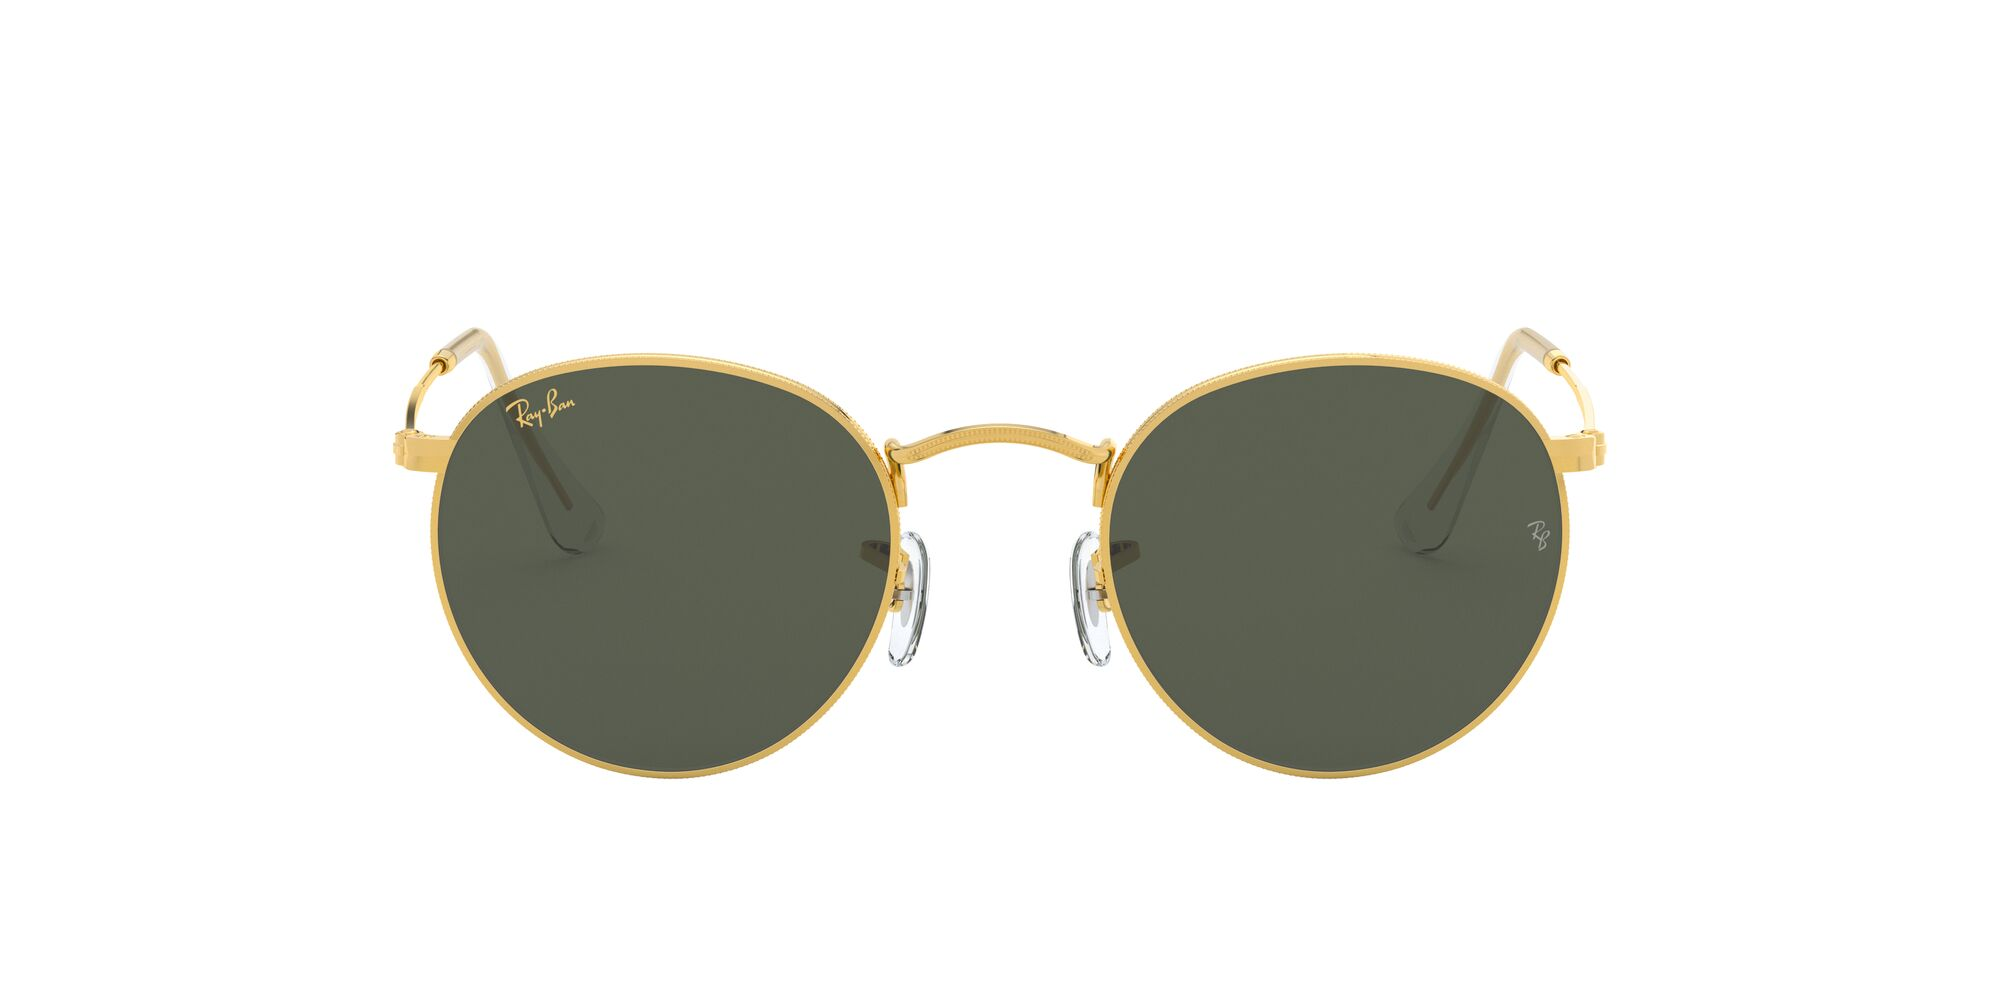 Front Ray-Ban Ray-Ban 0RB3447 919631 53/21 Goud/Groen